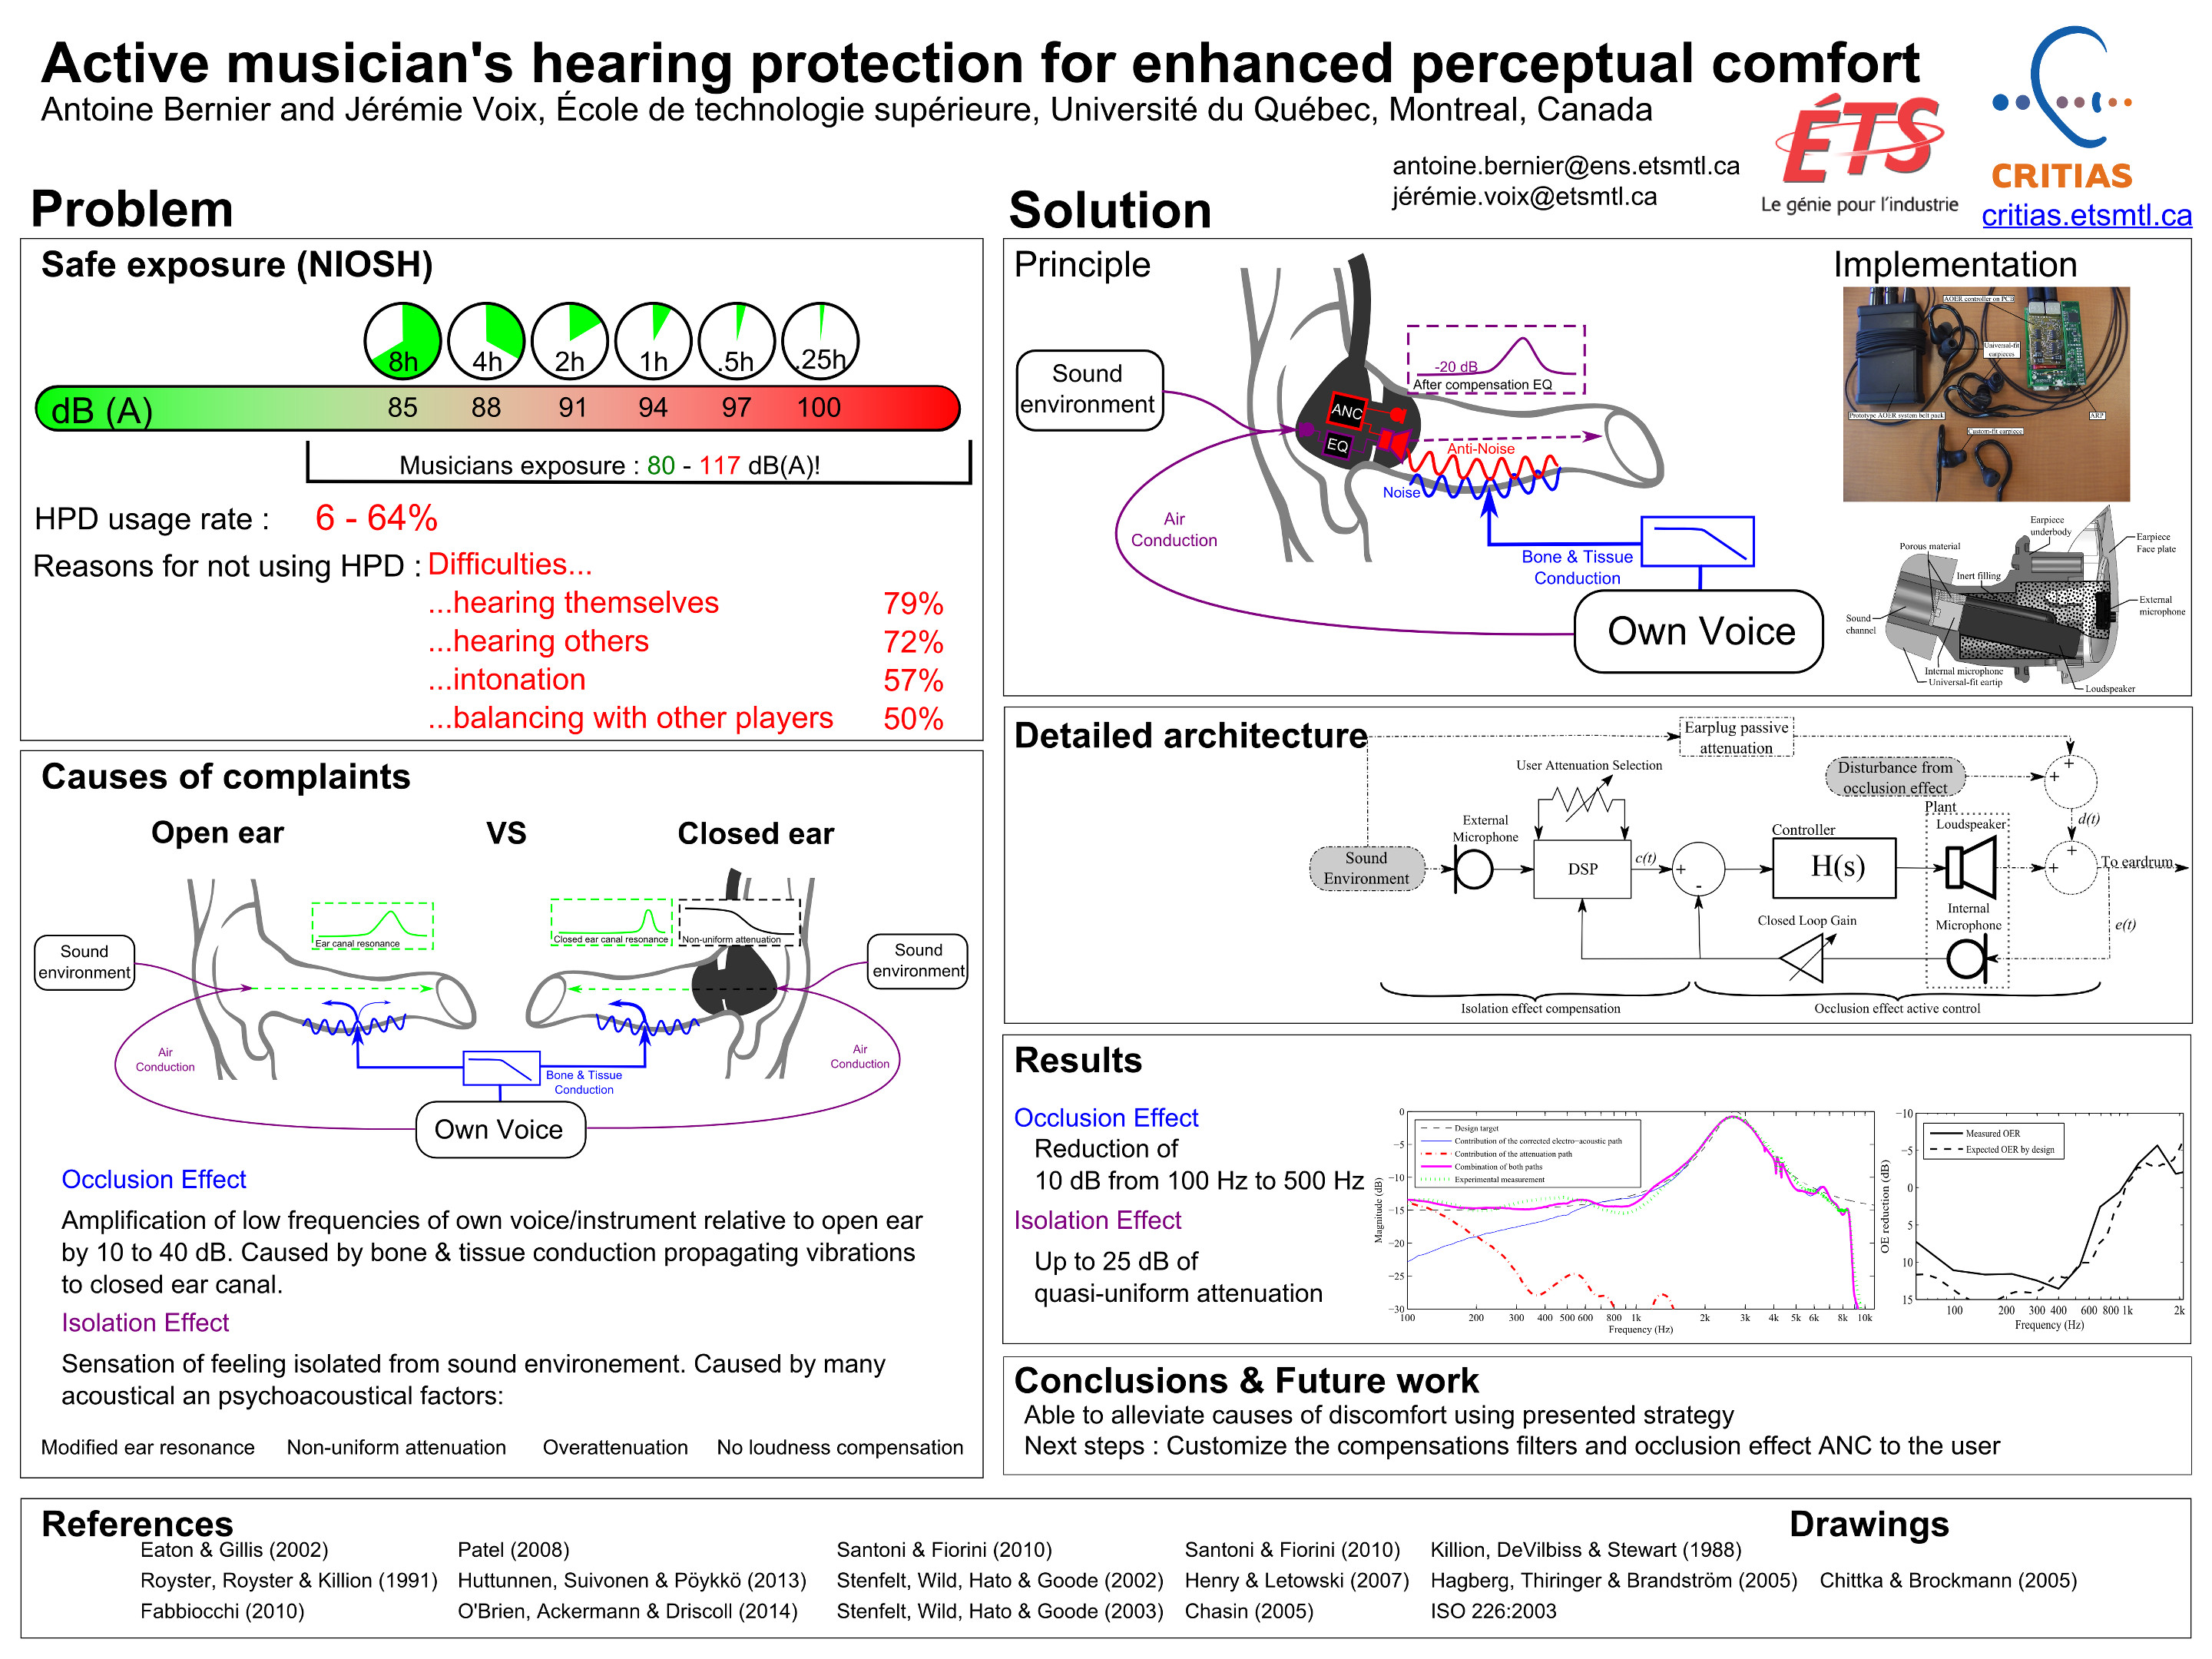 Move Your Jaw To Generate Electricity Critias Generating Diagram Antoine Bernier And Jrmie Voix 2015 Active Musicians Hearing Protection